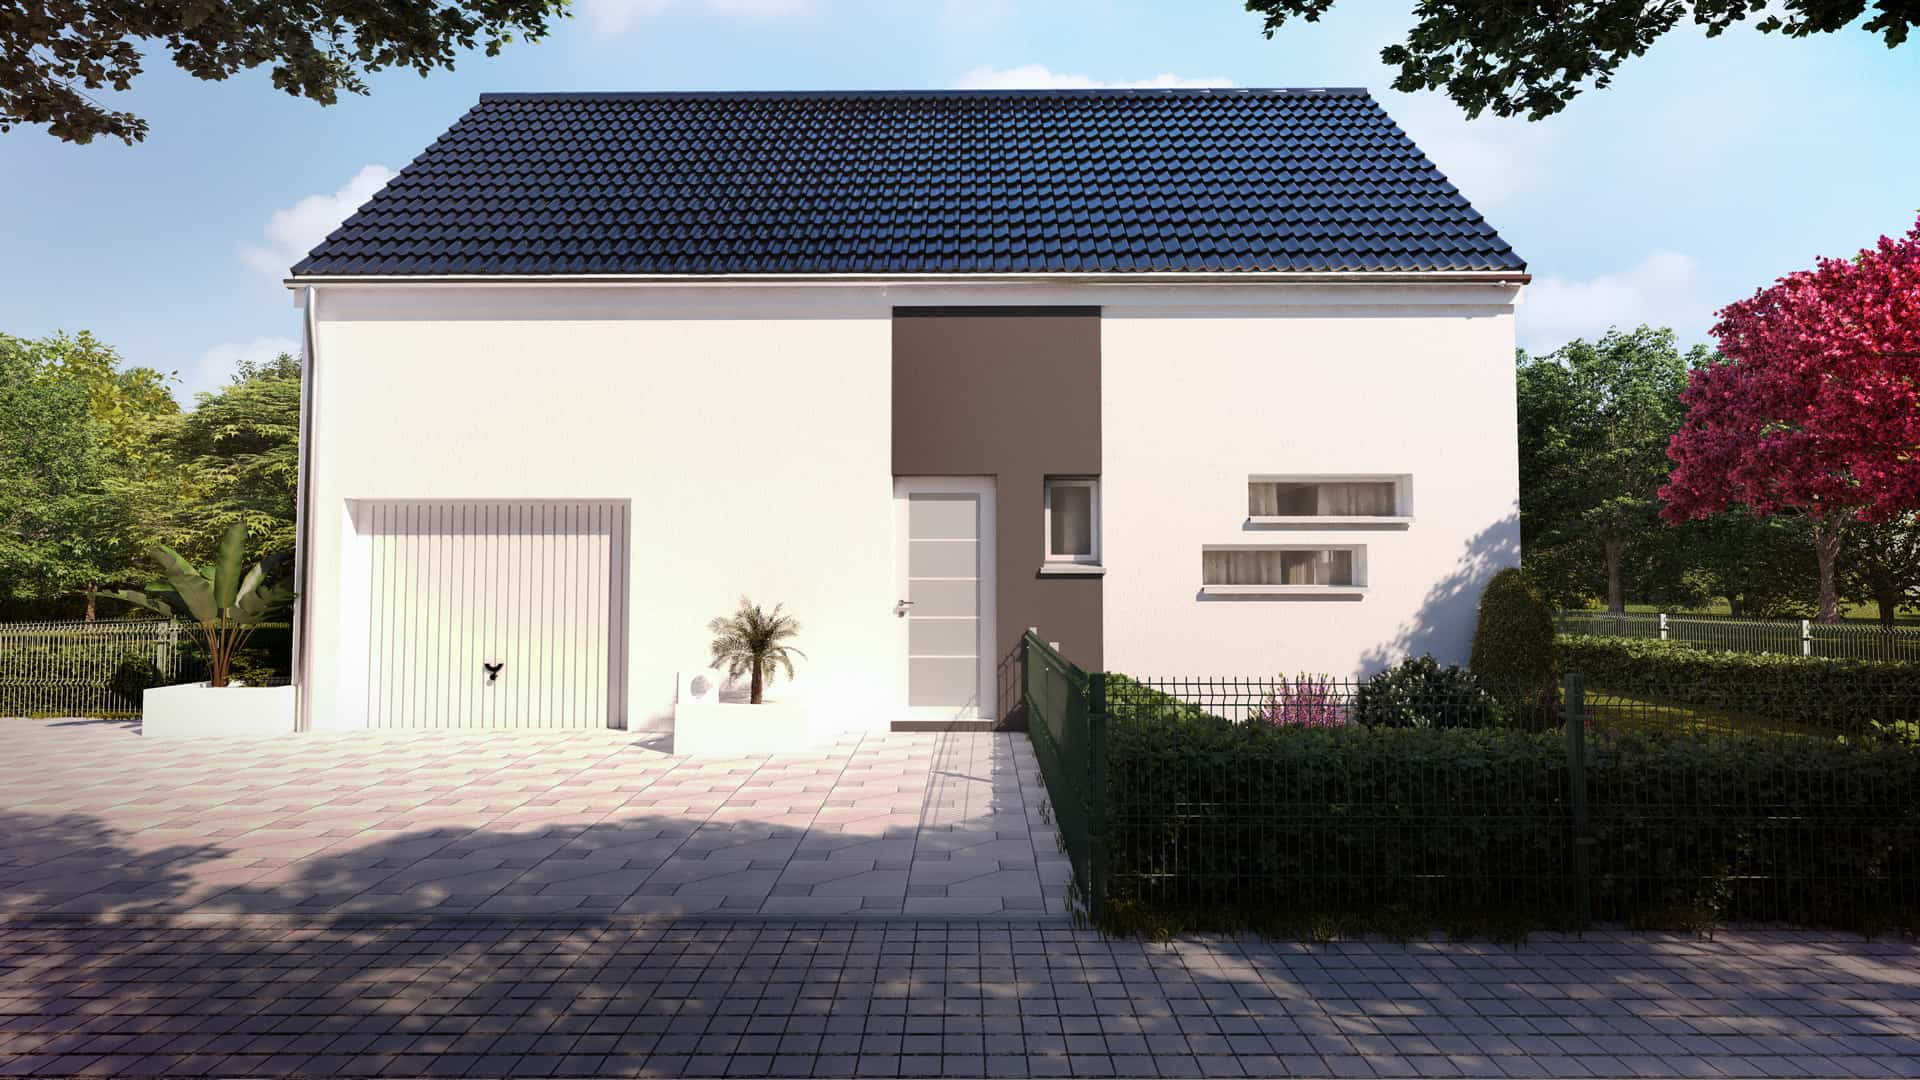 Construction contemporaine avec toit en deux pans - First M3